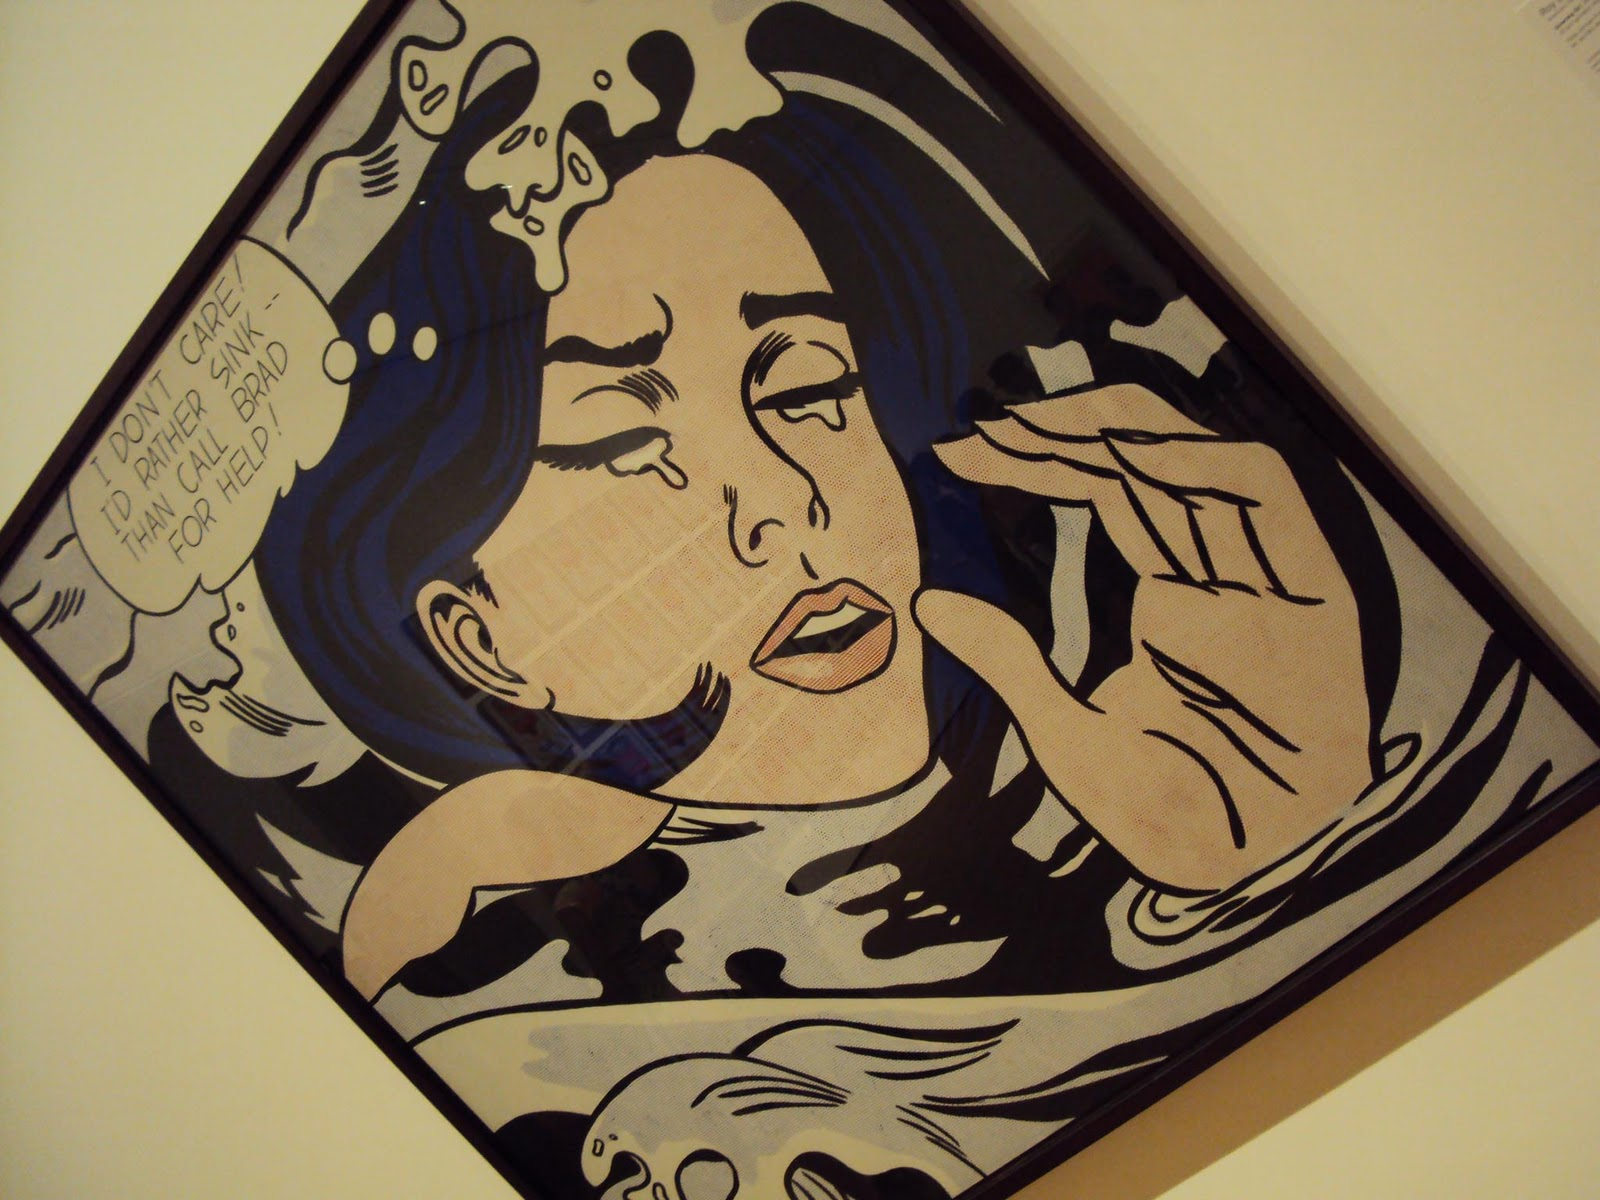 drowning girl roy lichtenstein This matted print features a reproduction of roy lichtenstein's work drowning girl (1963), from moma's collection this reproduction is printed using state-of-the-art printing technology and materials.